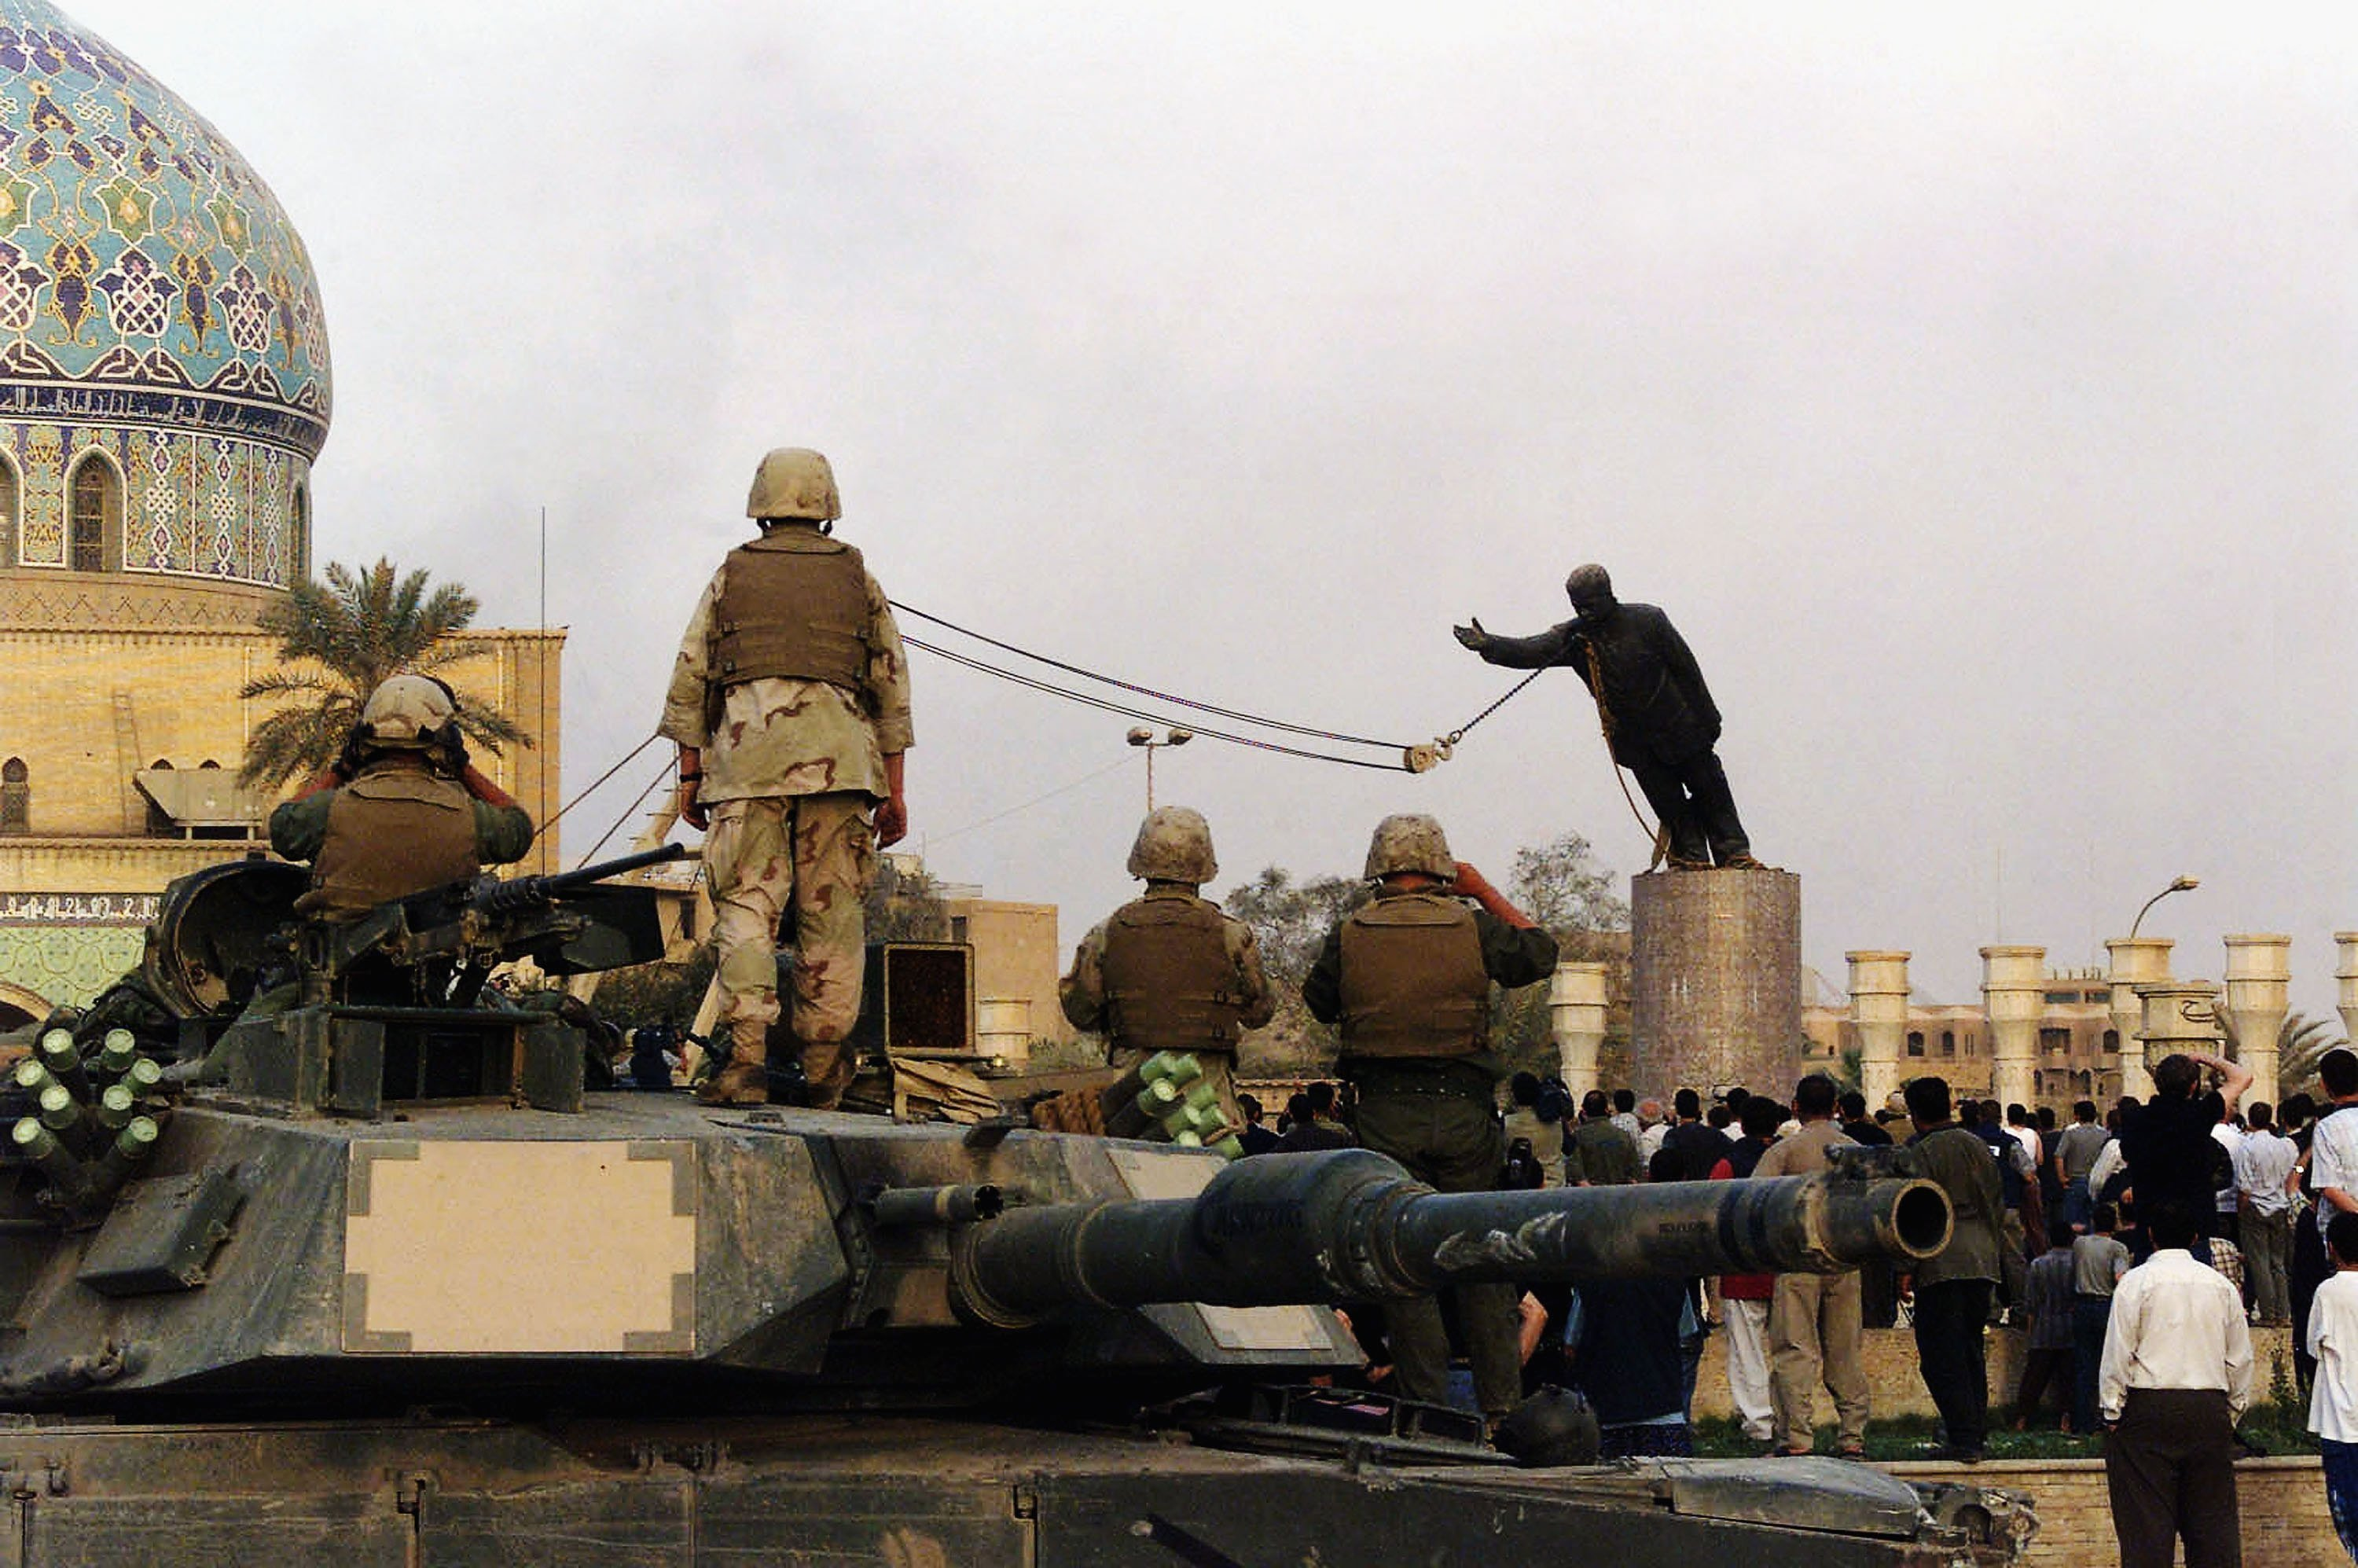 WENY News - 15 Years later, Americans remain split over Iraq War